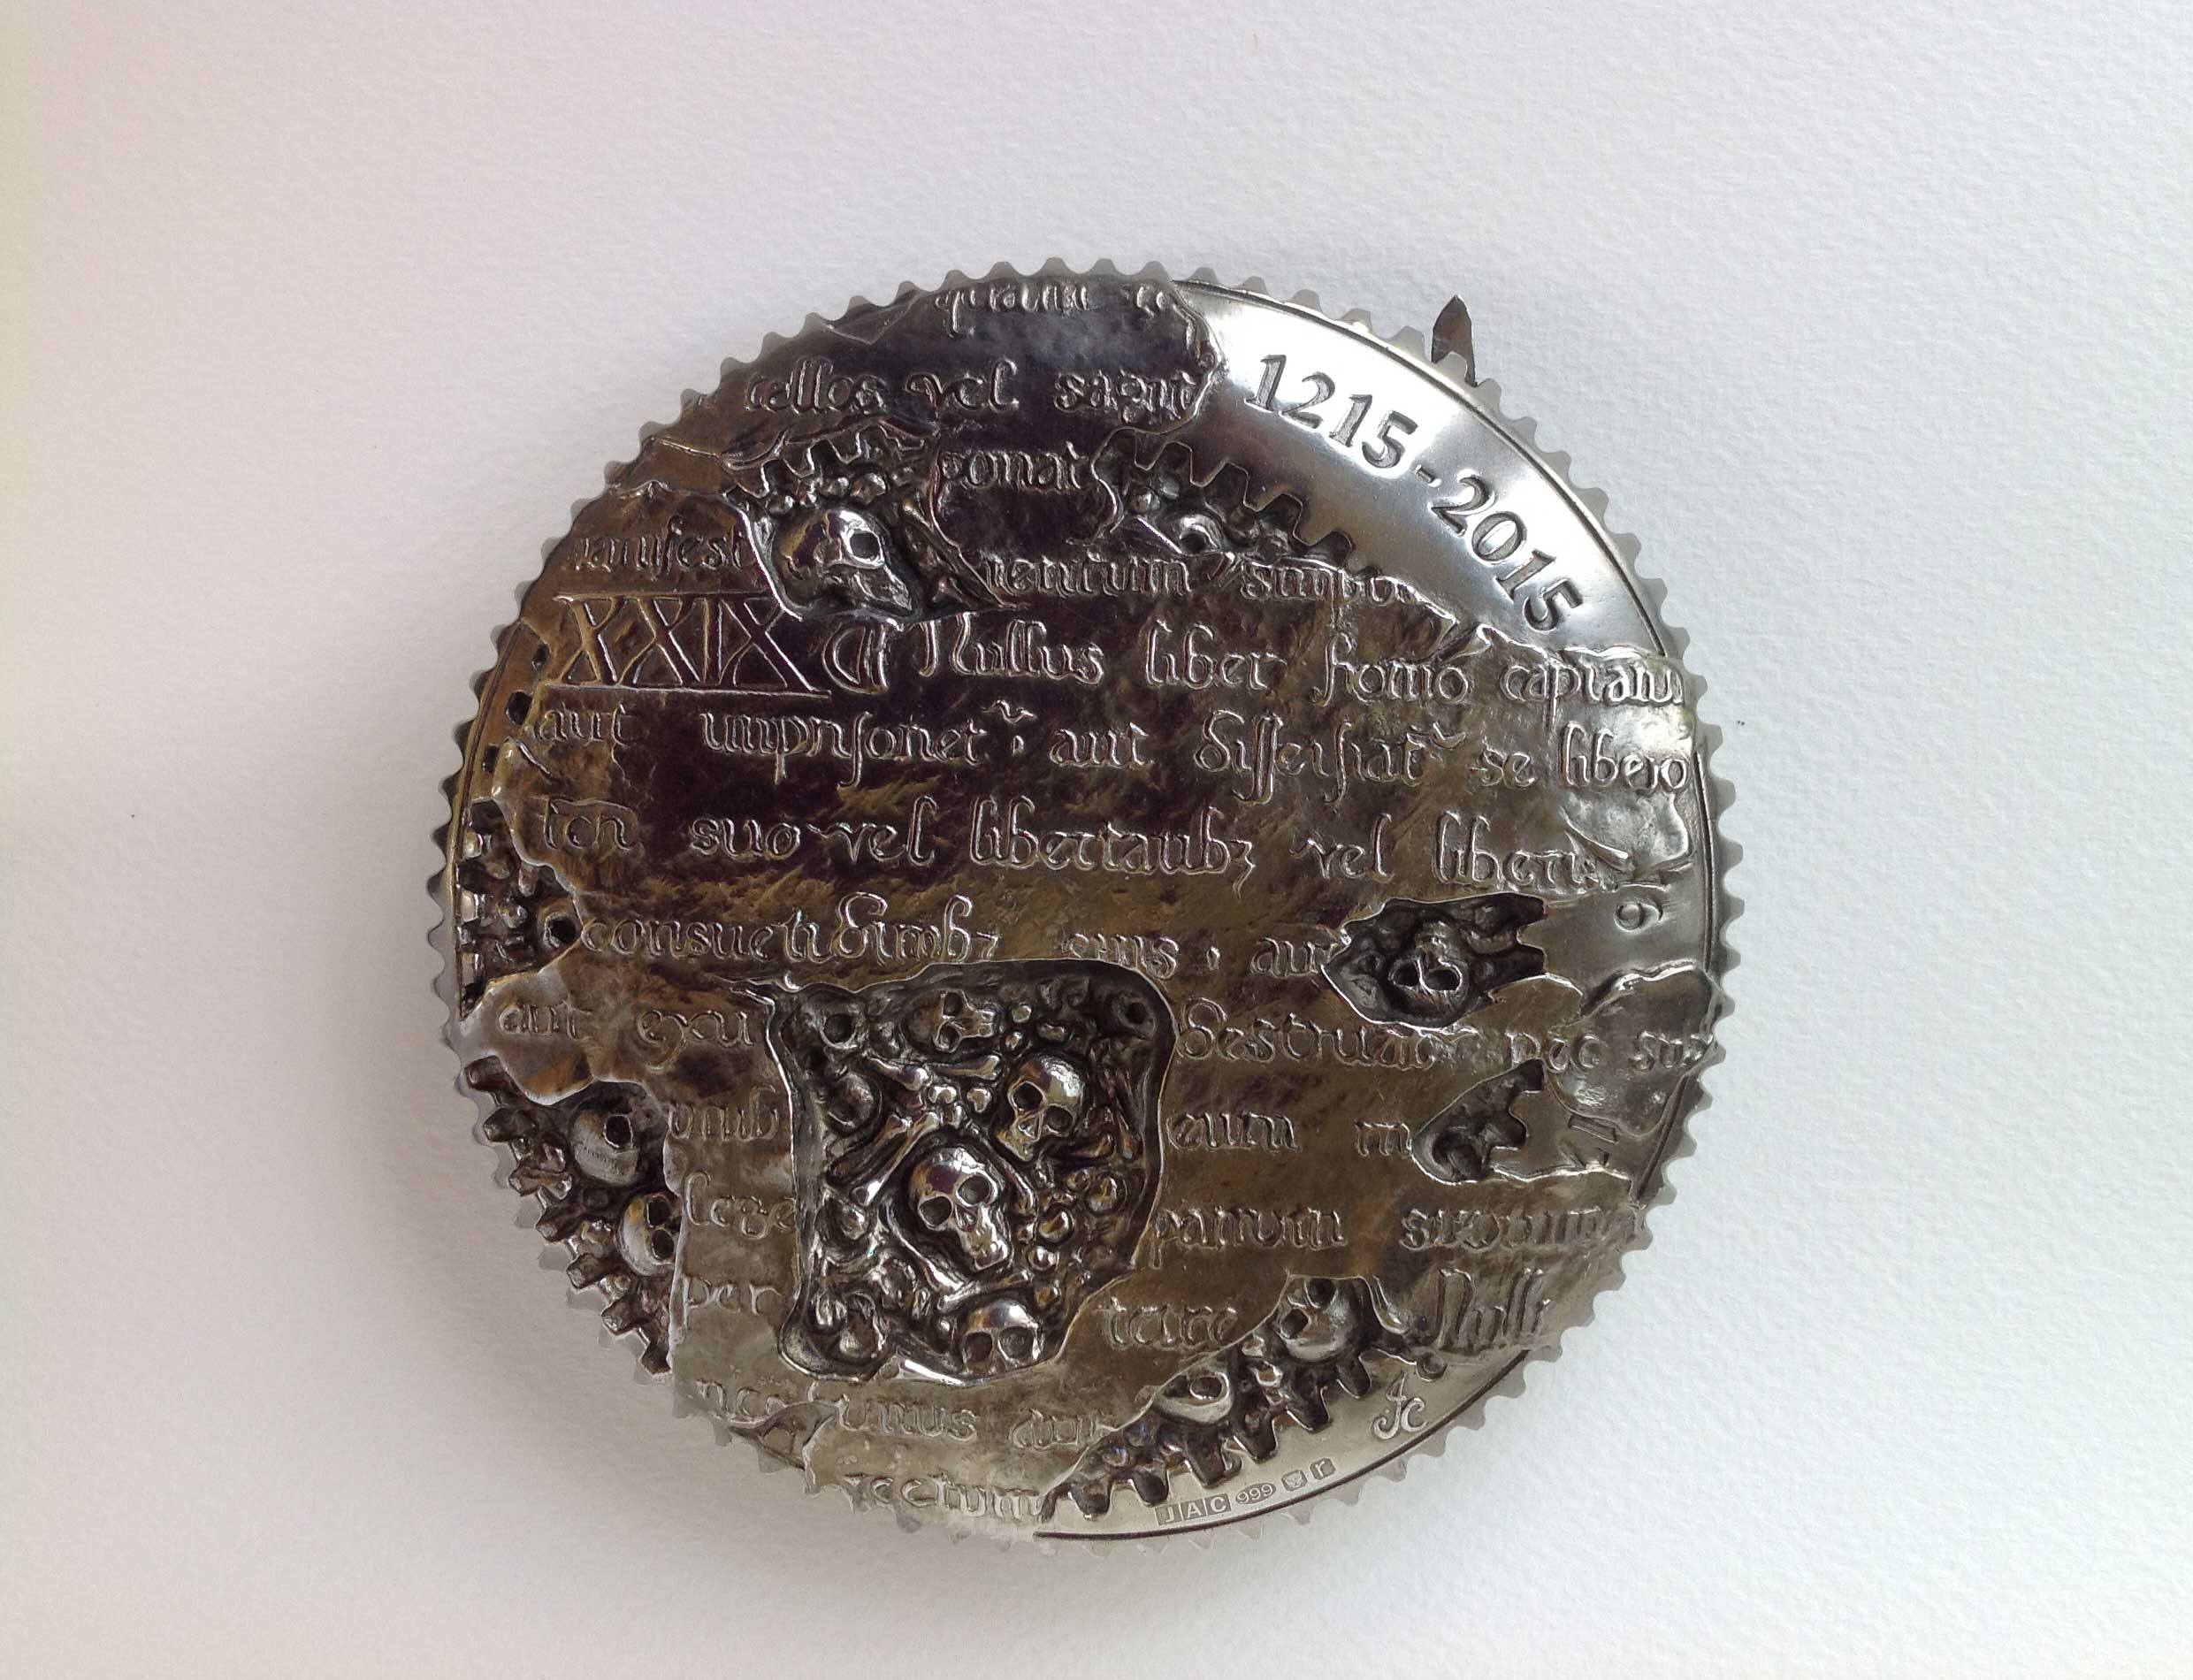 The Magna Carta Medal 2015 obverse